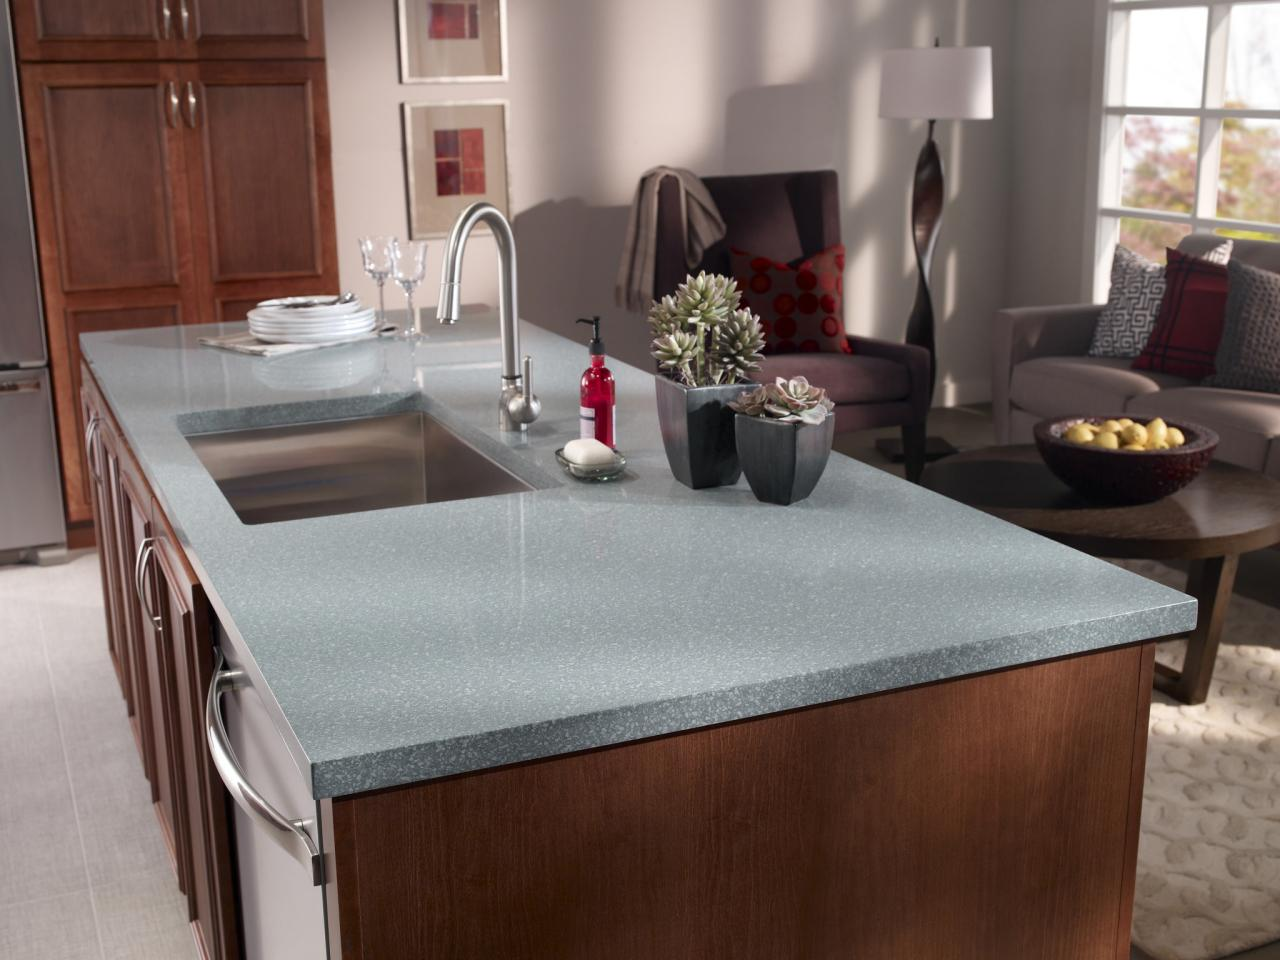 Corian Kitchen Countertops Pictures Ideas Tips From Hgtv Hgtv